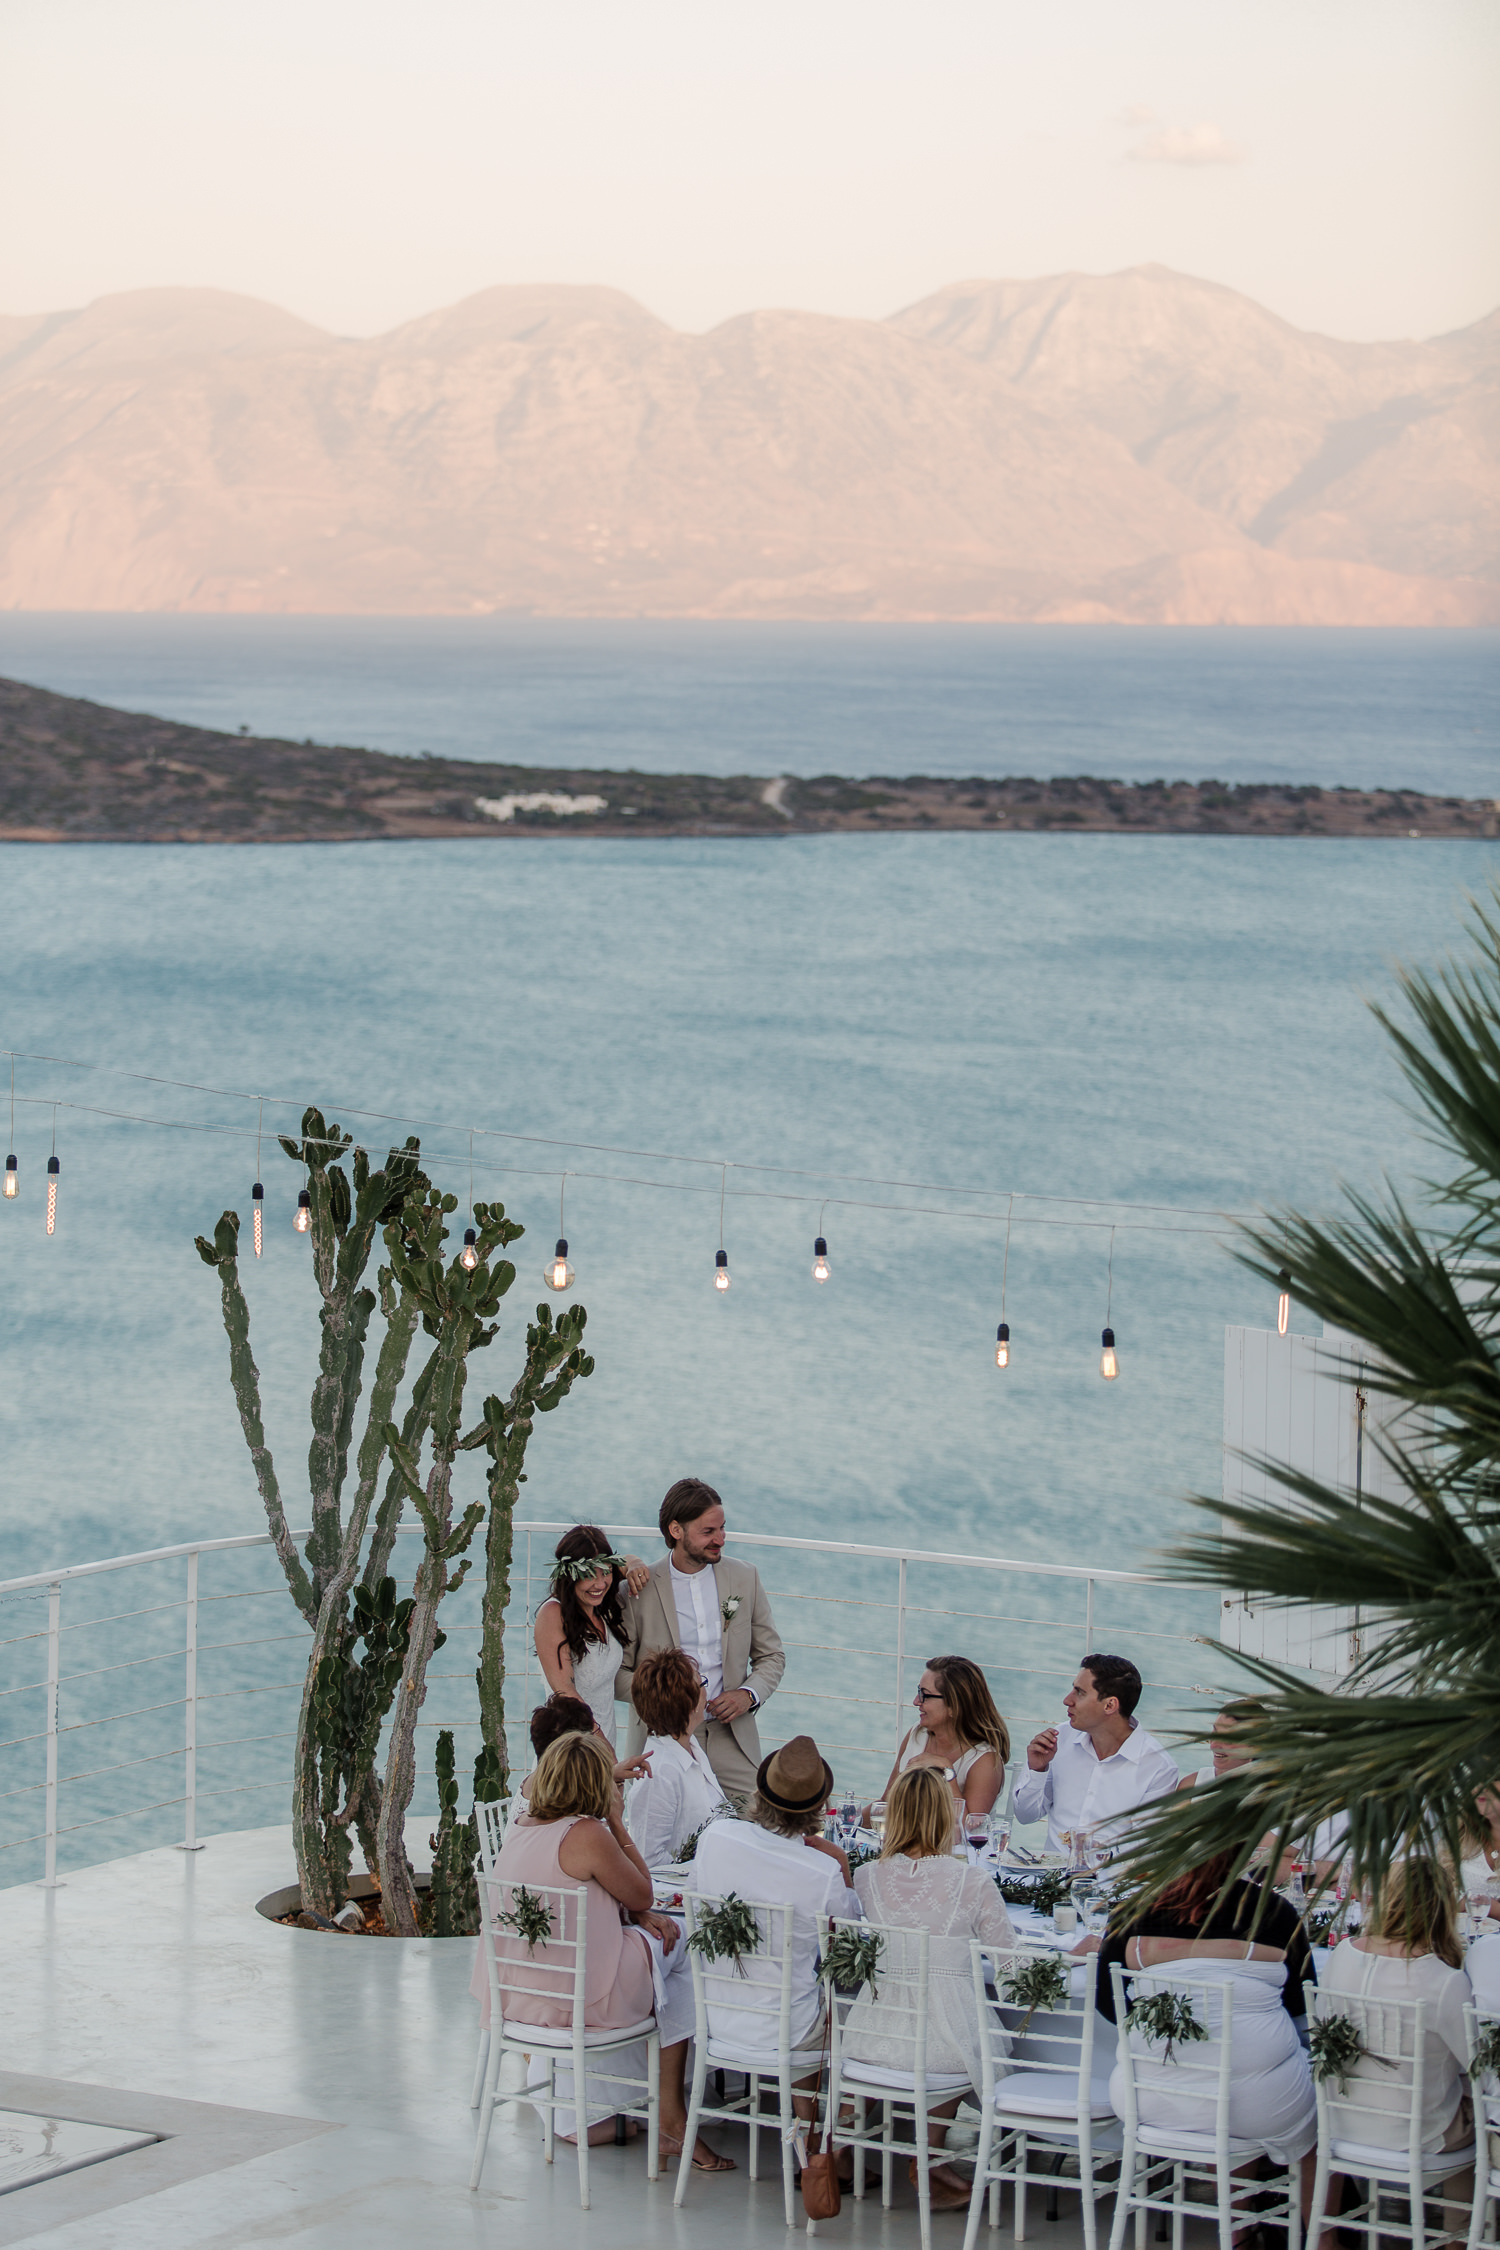 Fotomagoria - Elounda - Crete - Greece Wedding 266.jpg